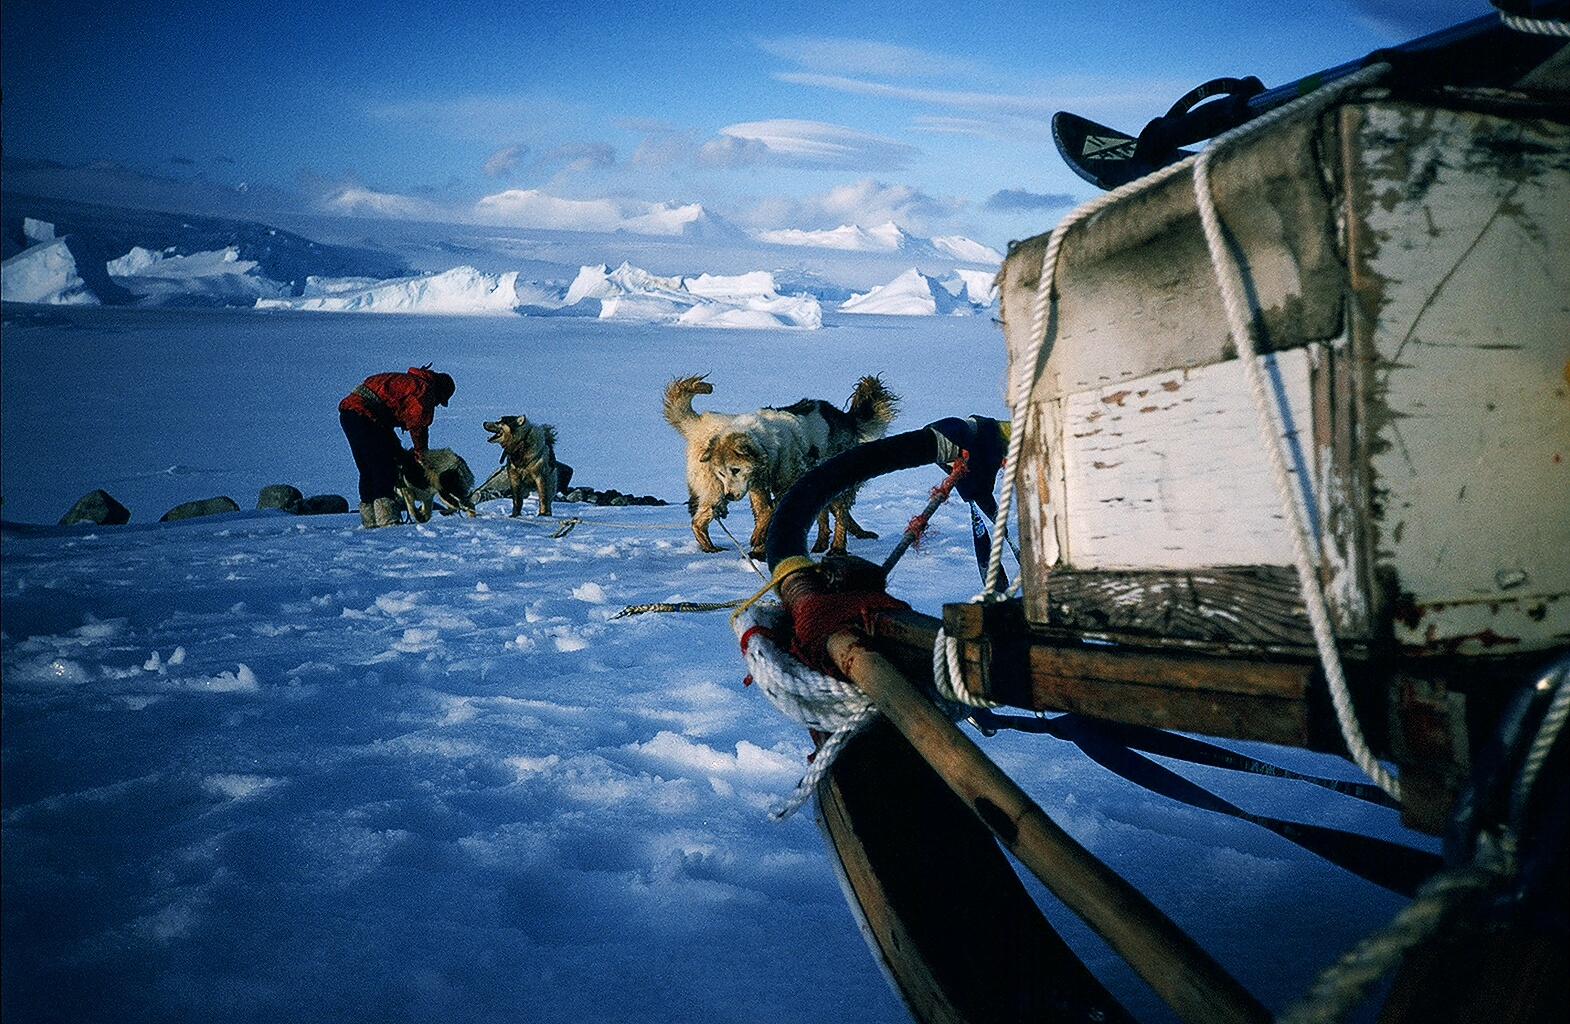 I was fortunate to be part of an end of an era - dogs in Antarctica